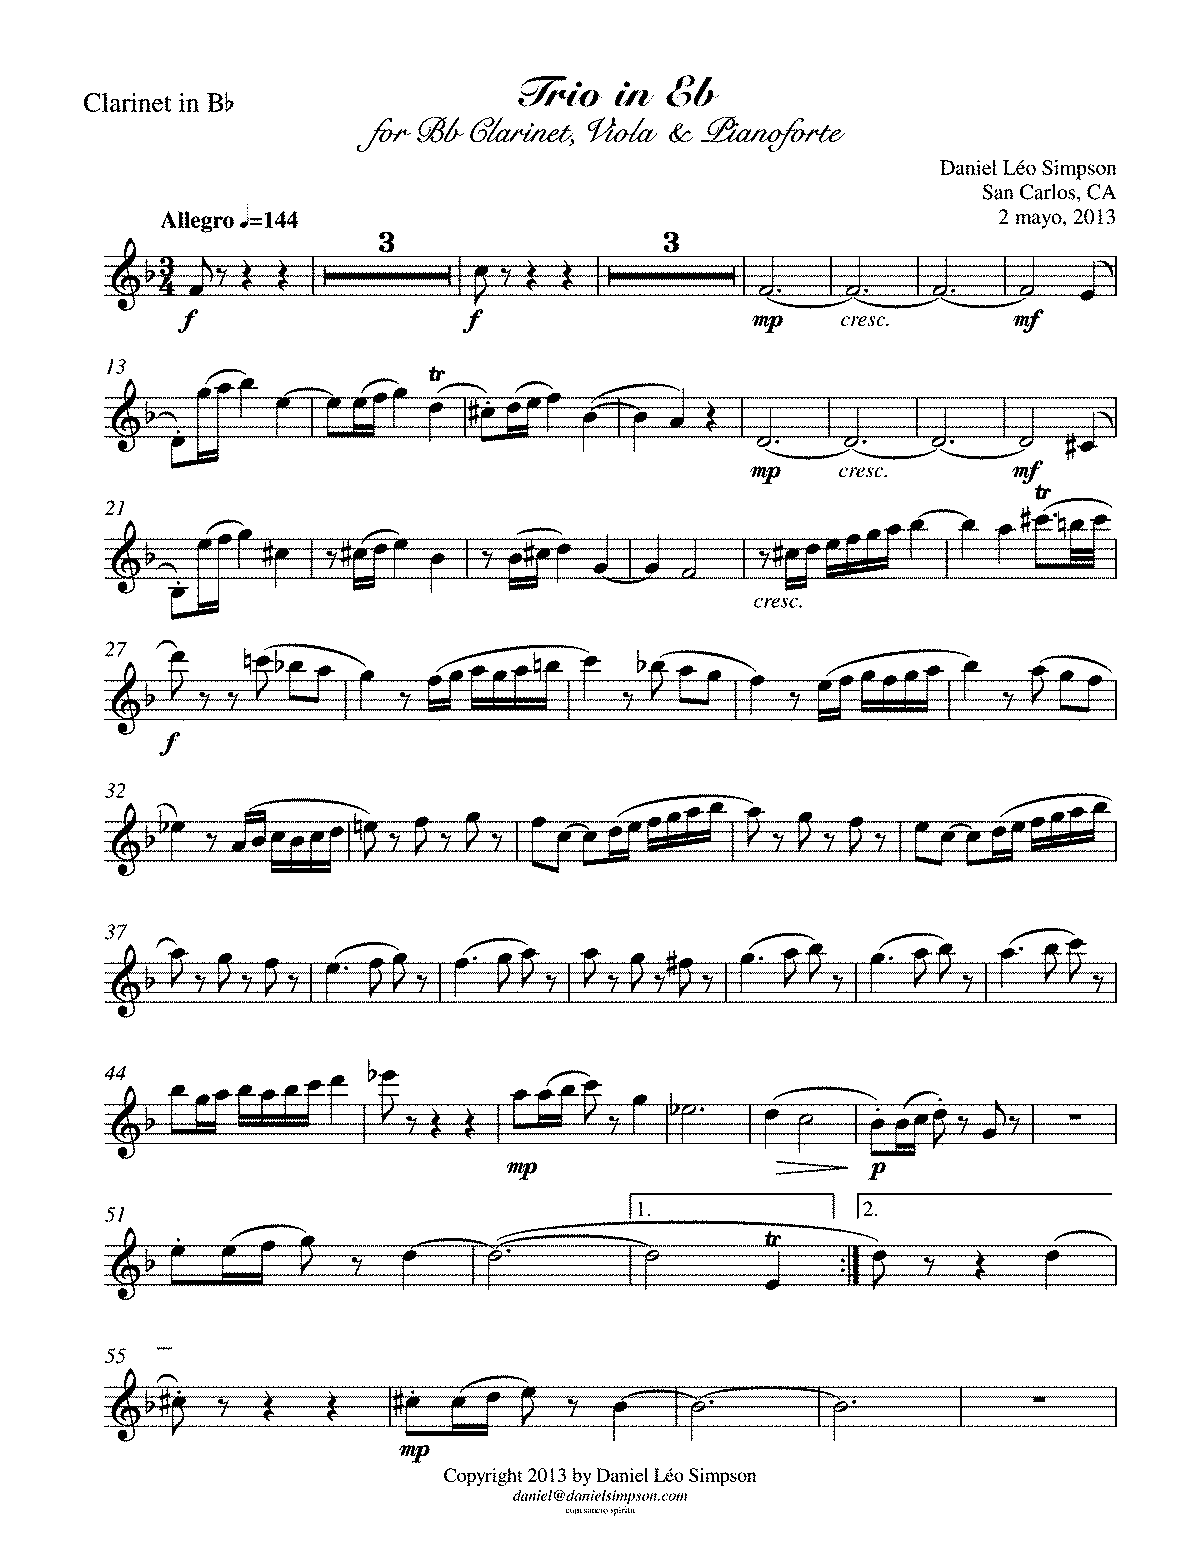 PMLP461366-CLARINET-ALTERNATE-OBOE-trio-oboe-viola-piano-alternate-clarinet-063013.pdf